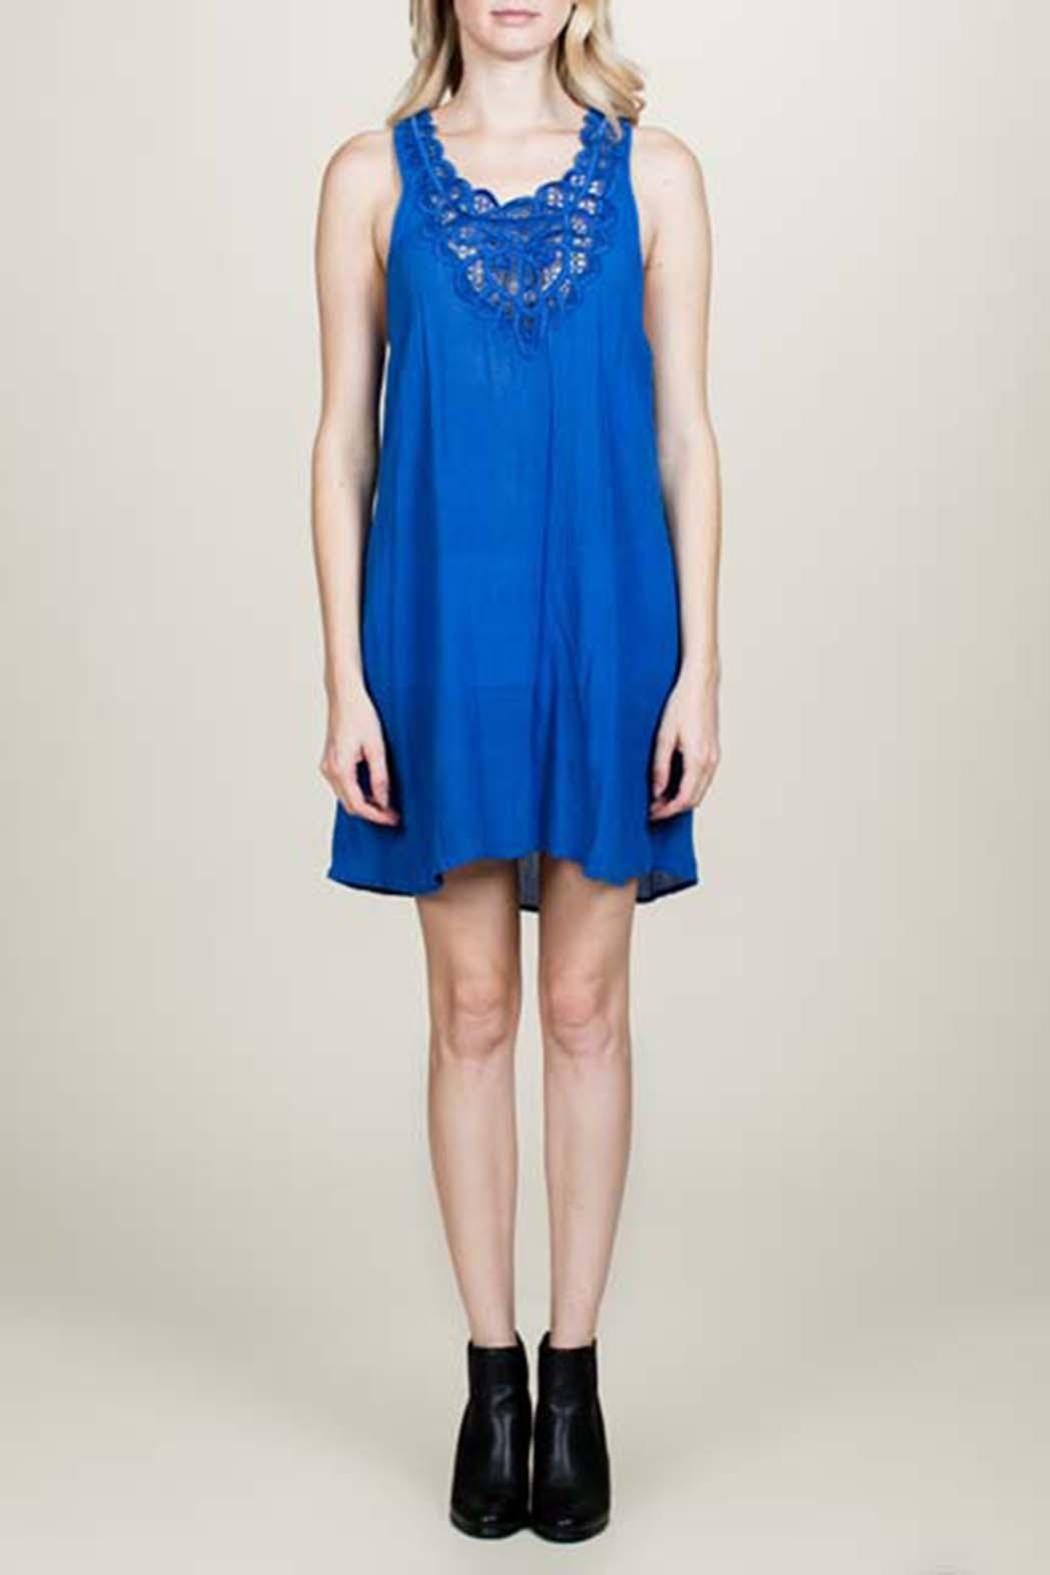 En creme blue embroidered dress from california by jasper